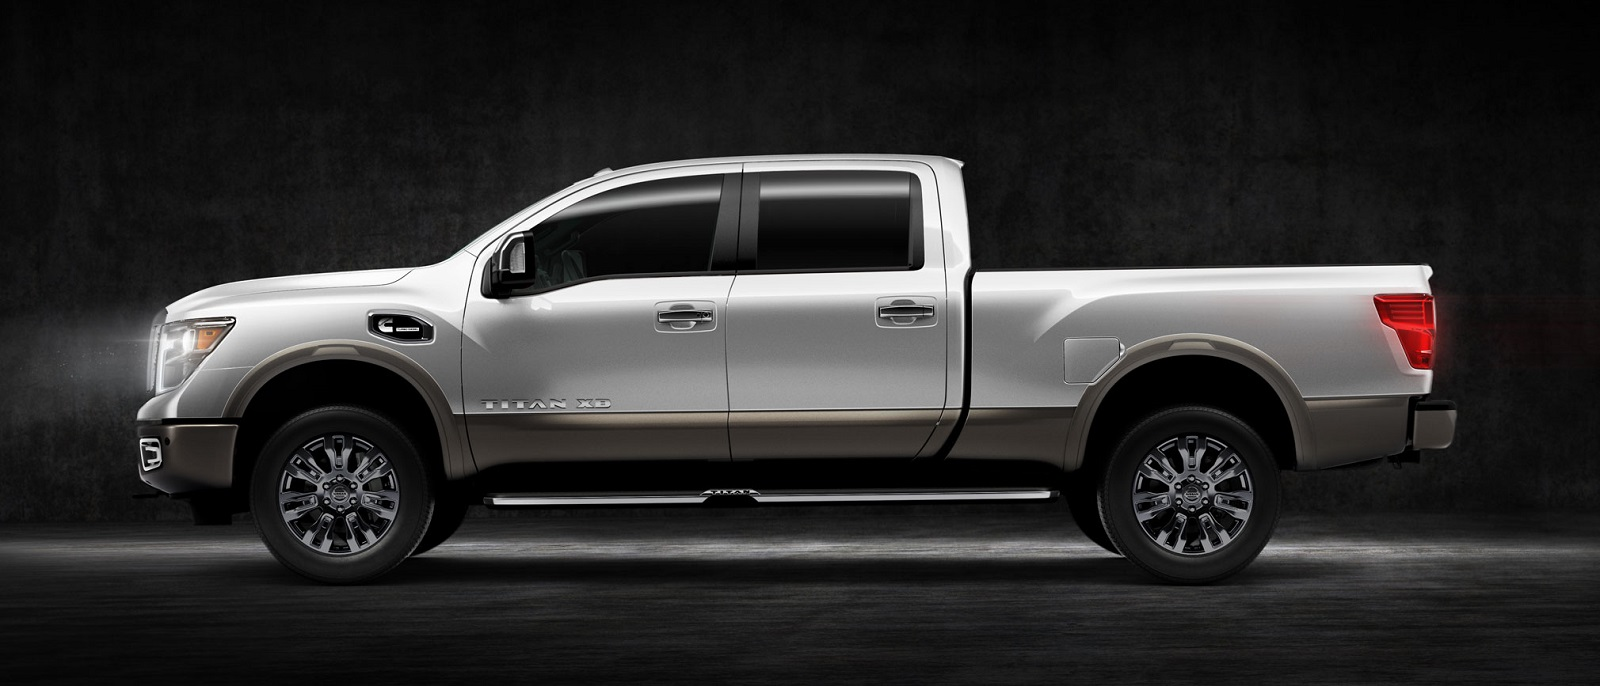 the 2016 nissan titan has arrived at andy mohr avon nissan andy mohr avon nissan prlog. Black Bedroom Furniture Sets. Home Design Ideas